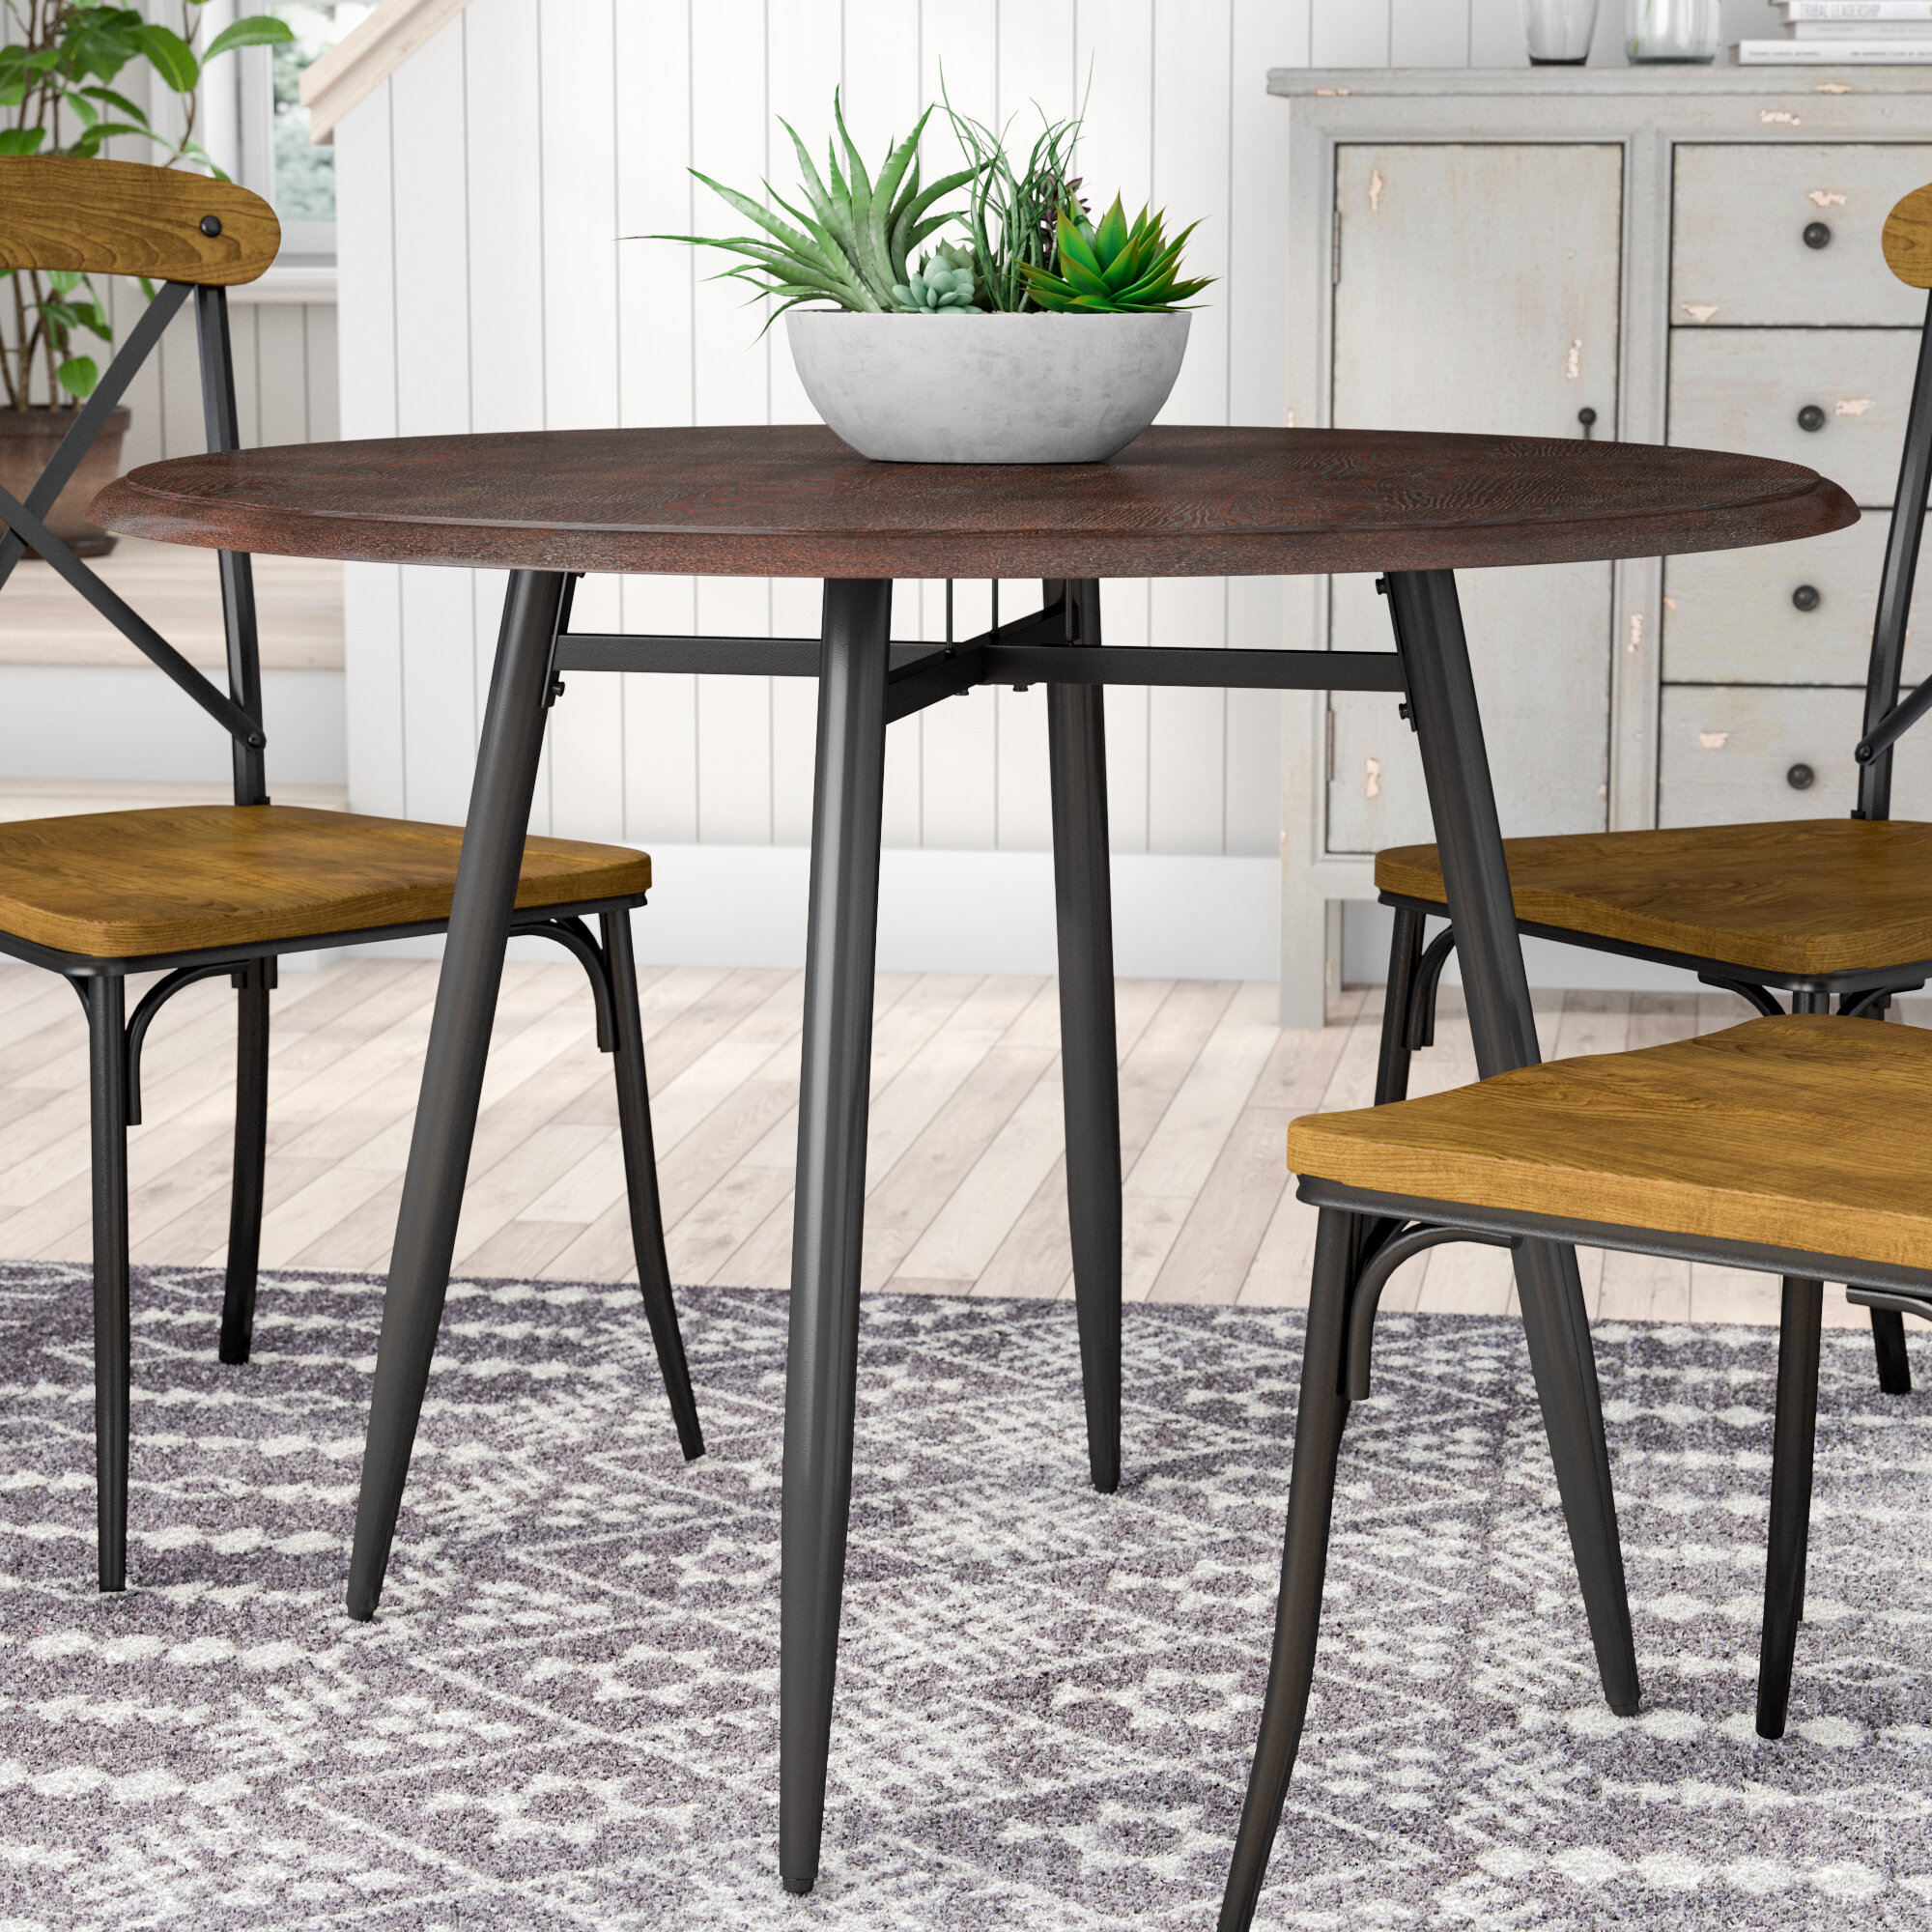 Rustic Farmhouse Round Dining Tables You Ll Love In 2021 Wayfair